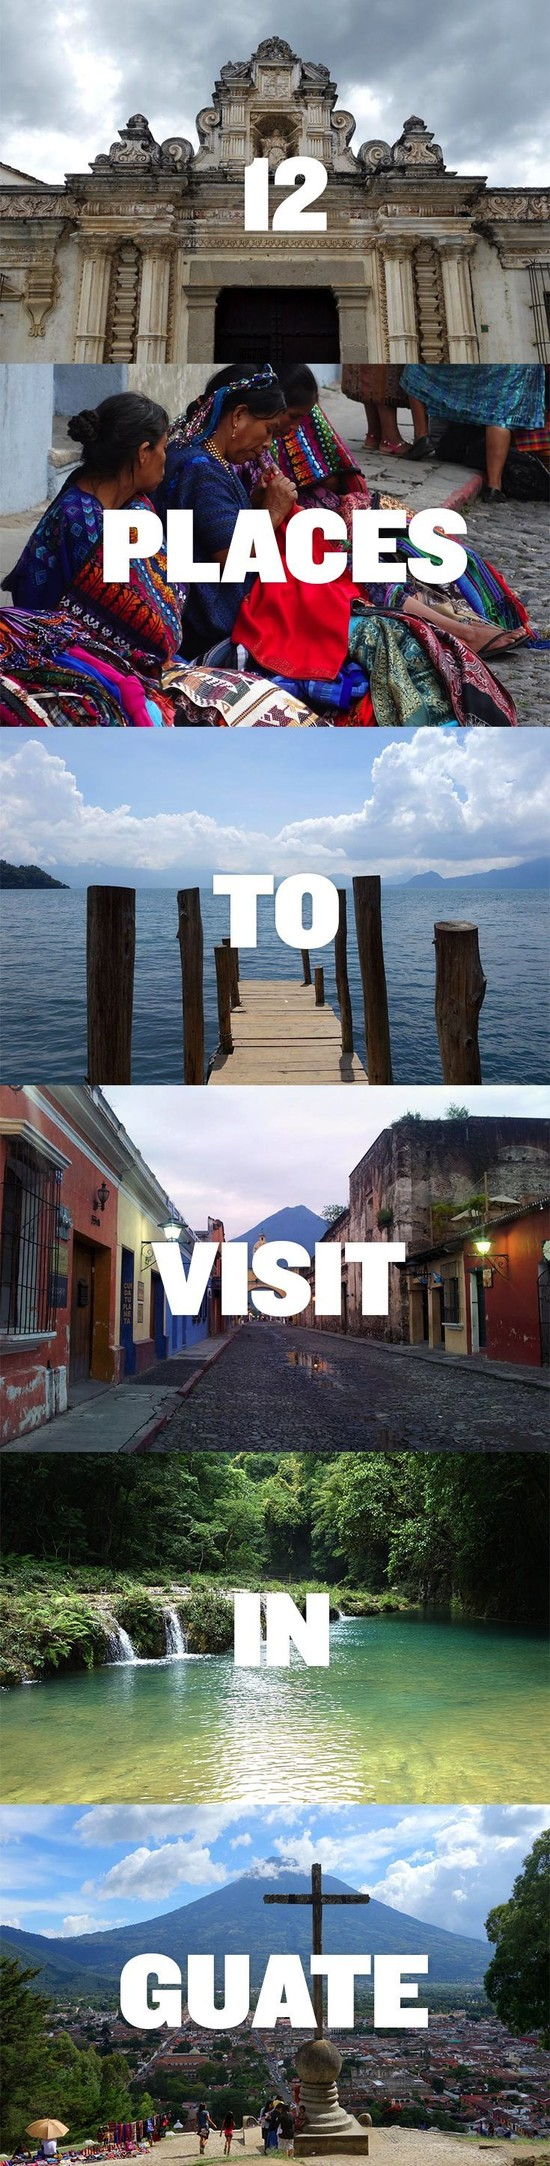 41 best images about Guatemala on Pinterest | Antigua ...